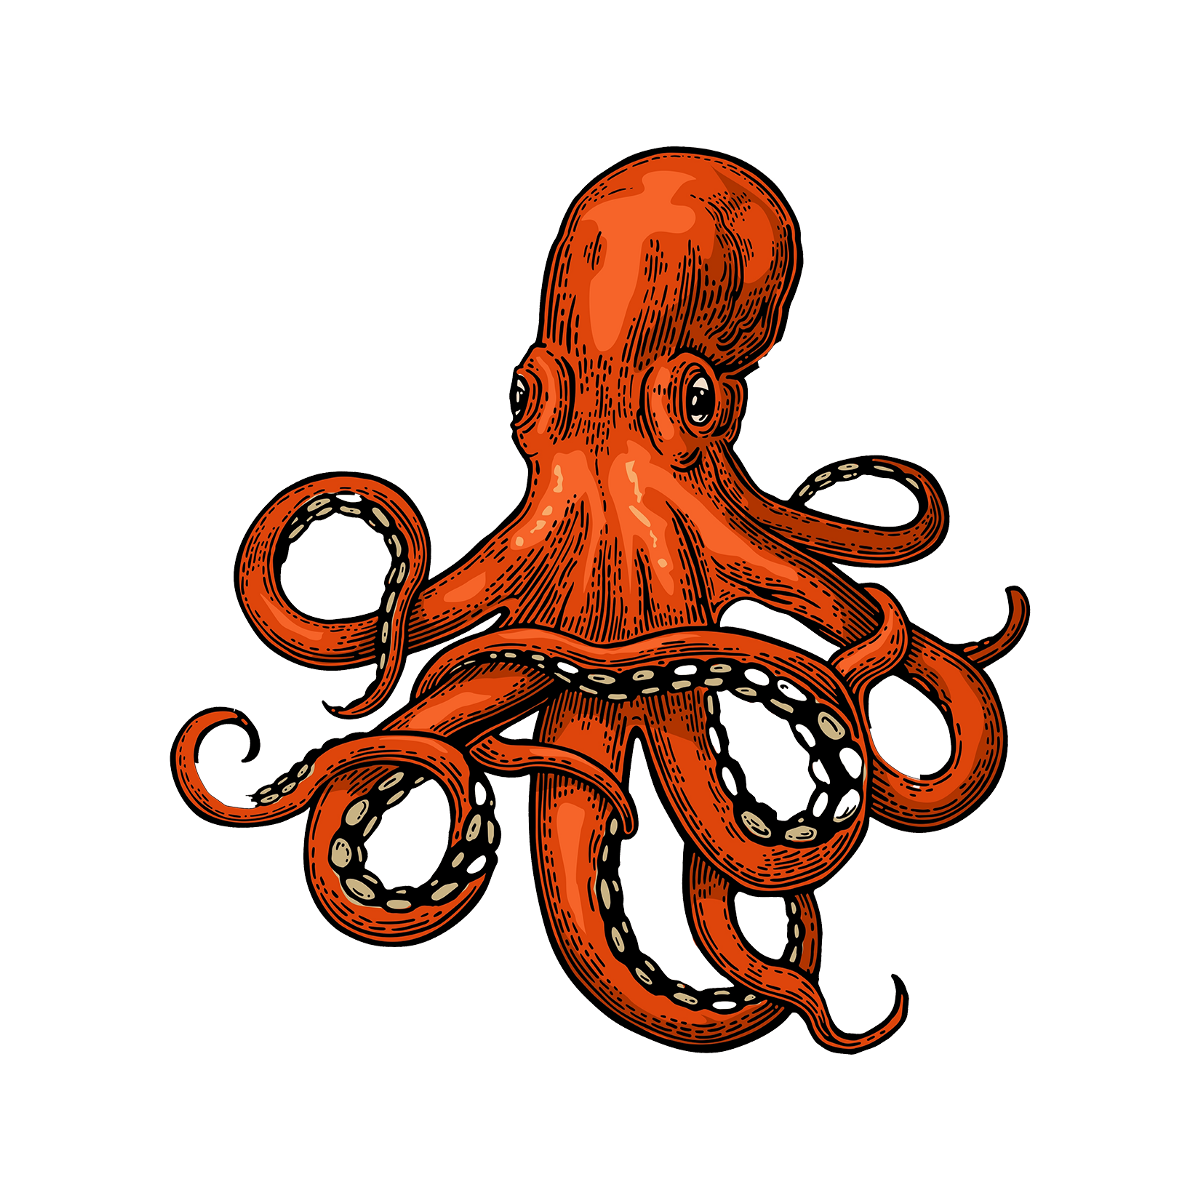 Squid transprent png free. Scholarships drawing octopus image free